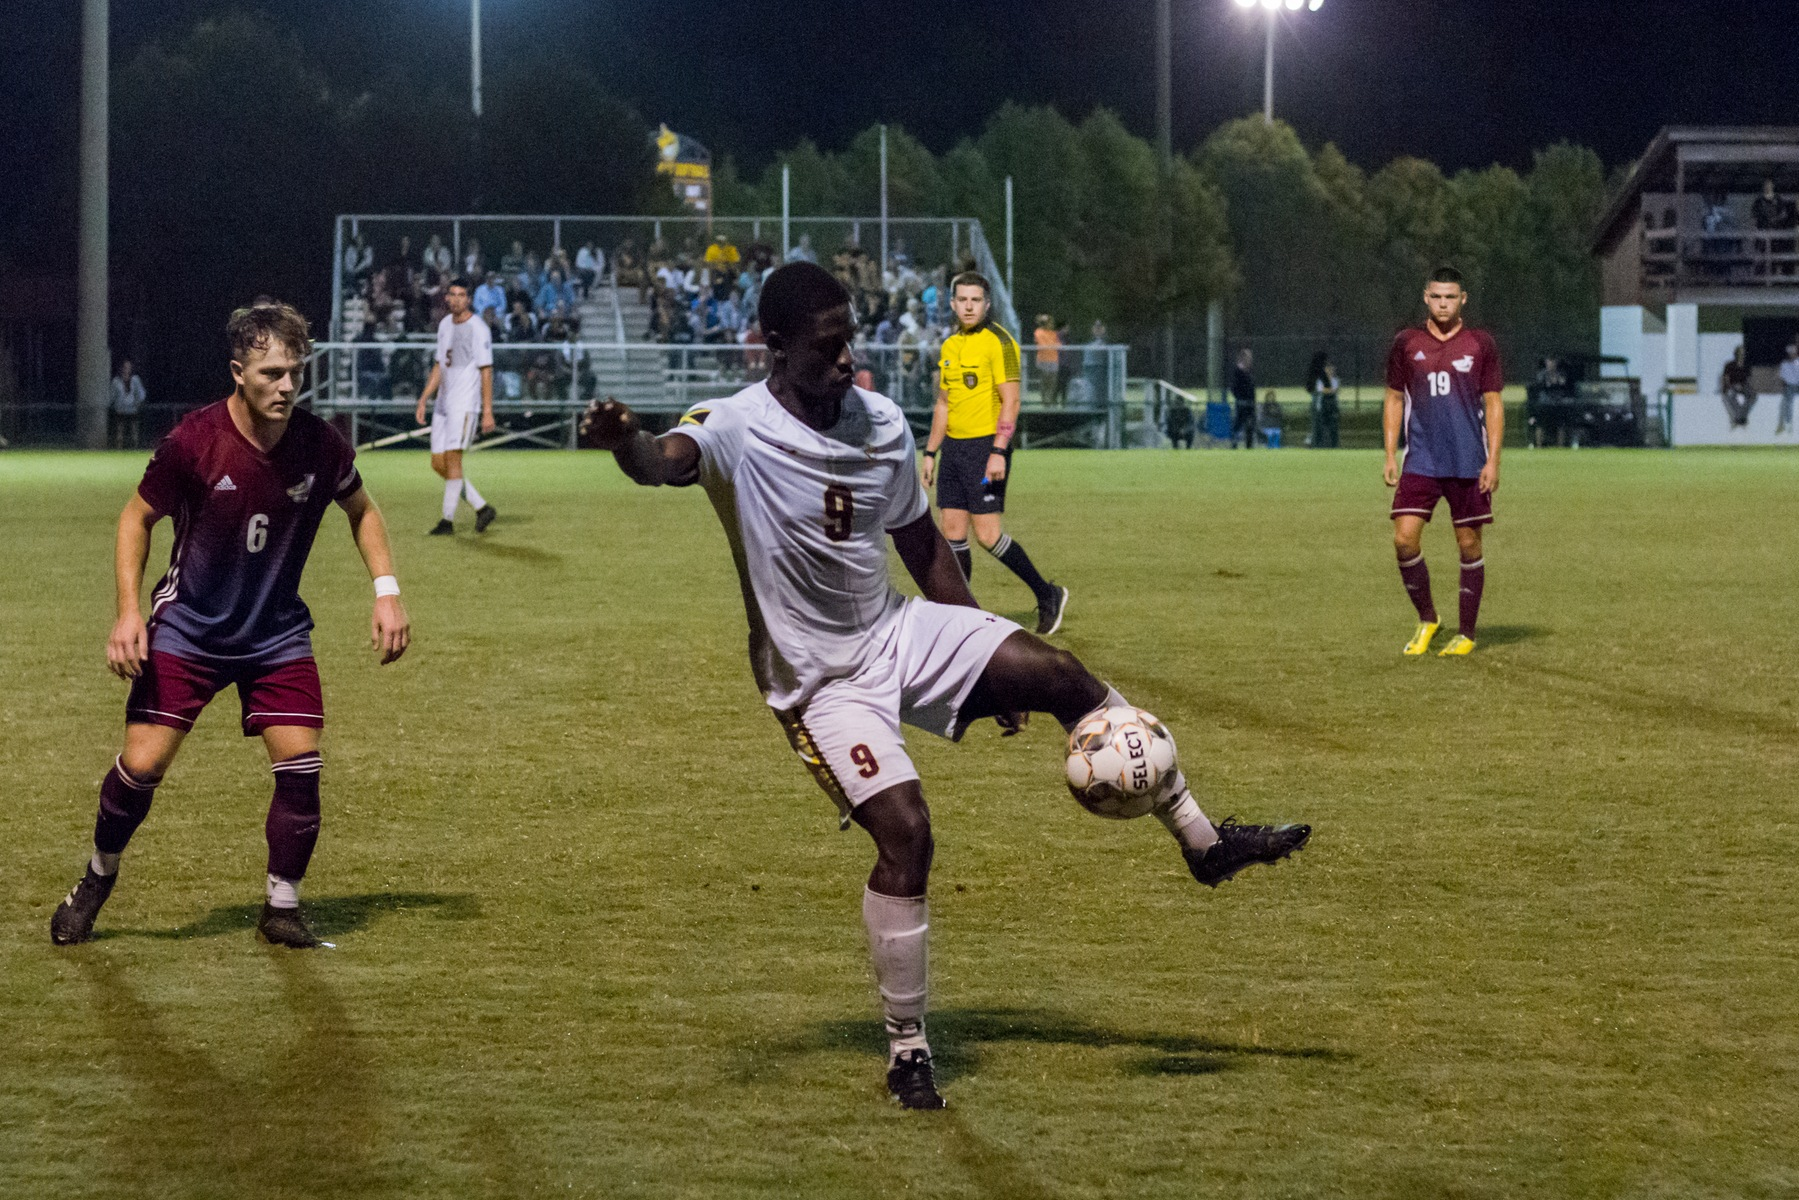 Pearl River's men's soccer team defeated visiting Jones College 4-3 on Friday, Oct. 12, 2018, in Poplarville. (BRETT RUSS/PRCC ATHLETICS)